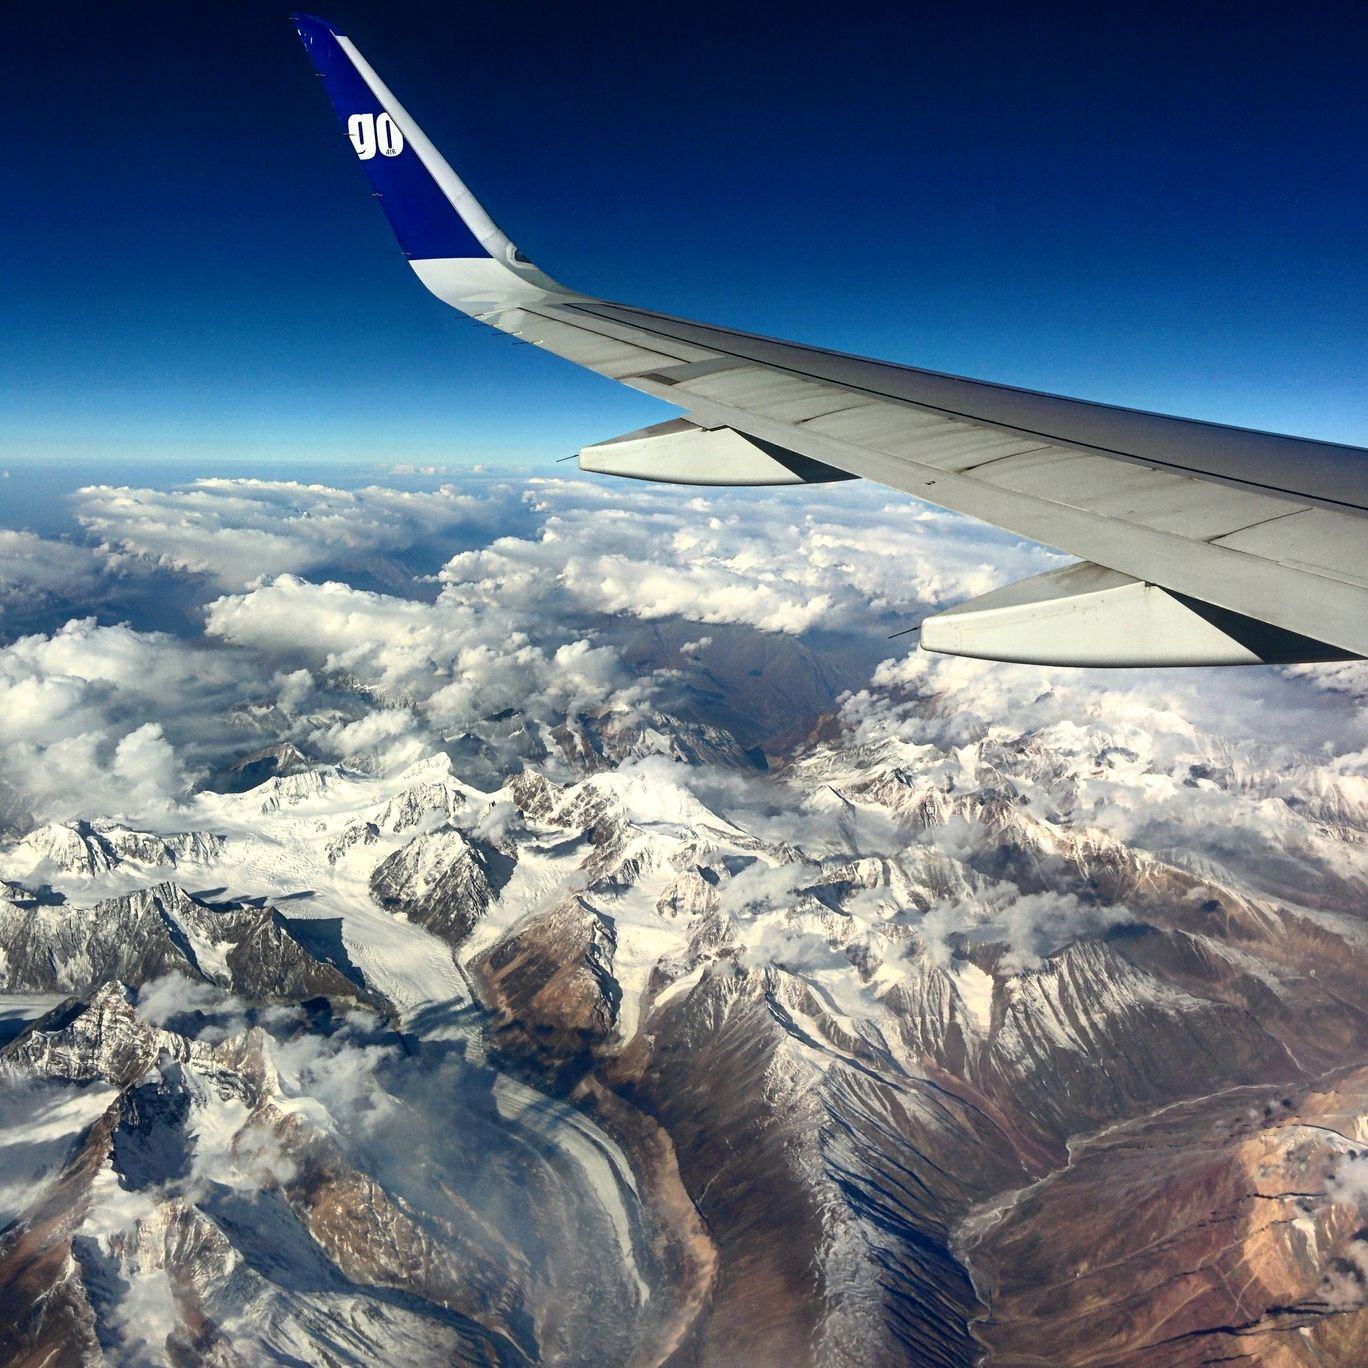 Photo of Himalayas By Gwyneth Pereira